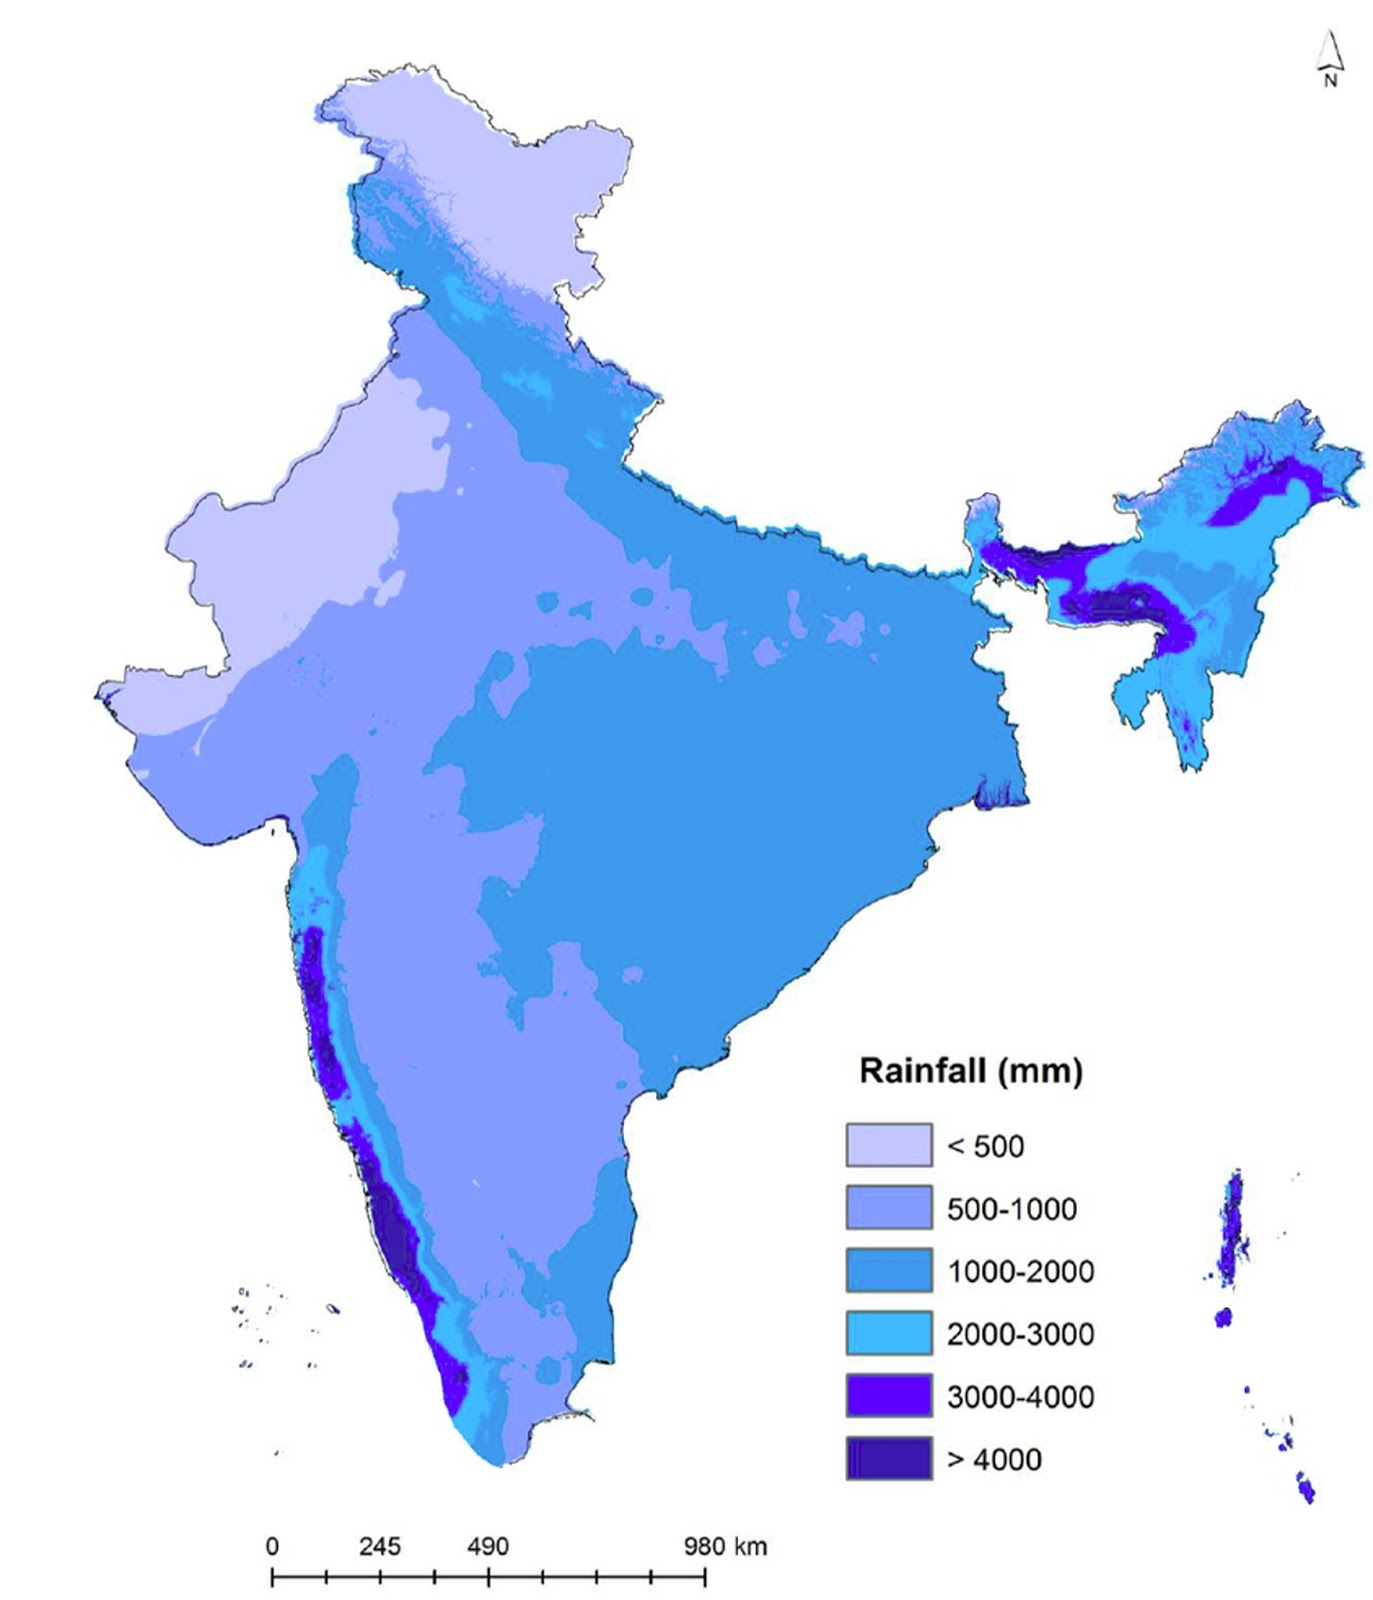 Annual rainfall map of India